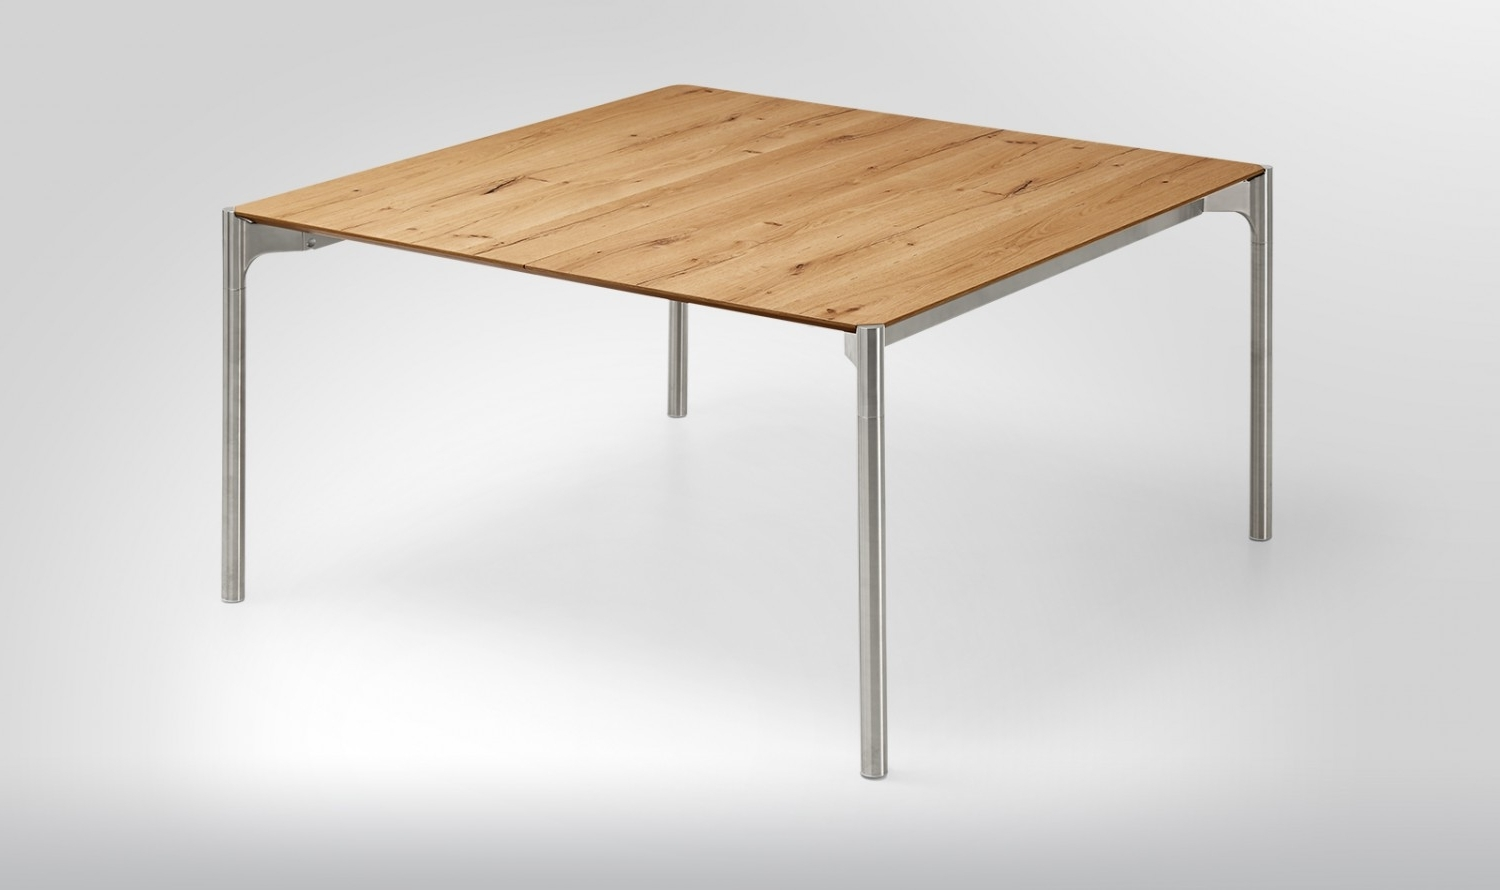 Newest Extendable Square Dining Tables Pertaining To Venjakob Et239 Mio Square Extendable Dining Table (View 16 of 25)